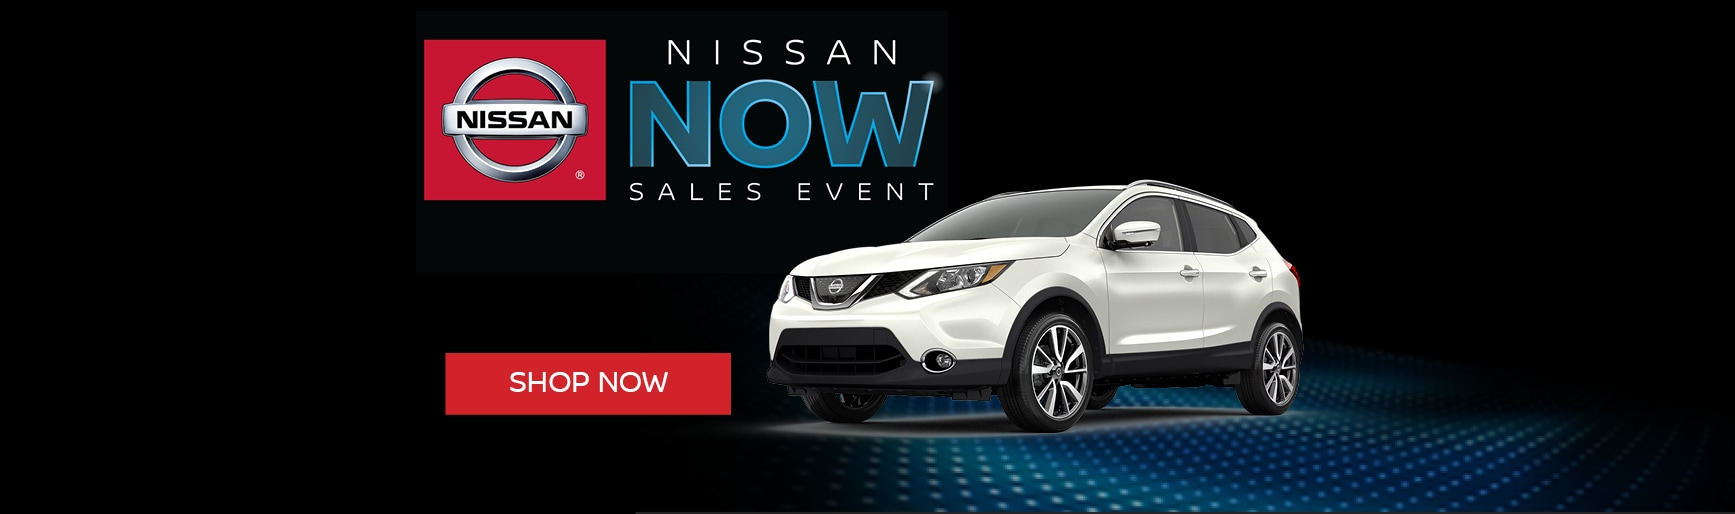 Marvelous New Nissan Hatchback Springfield Mo U003eu003e Youngblood Nissan | New U0026 Used Car  Dealer In